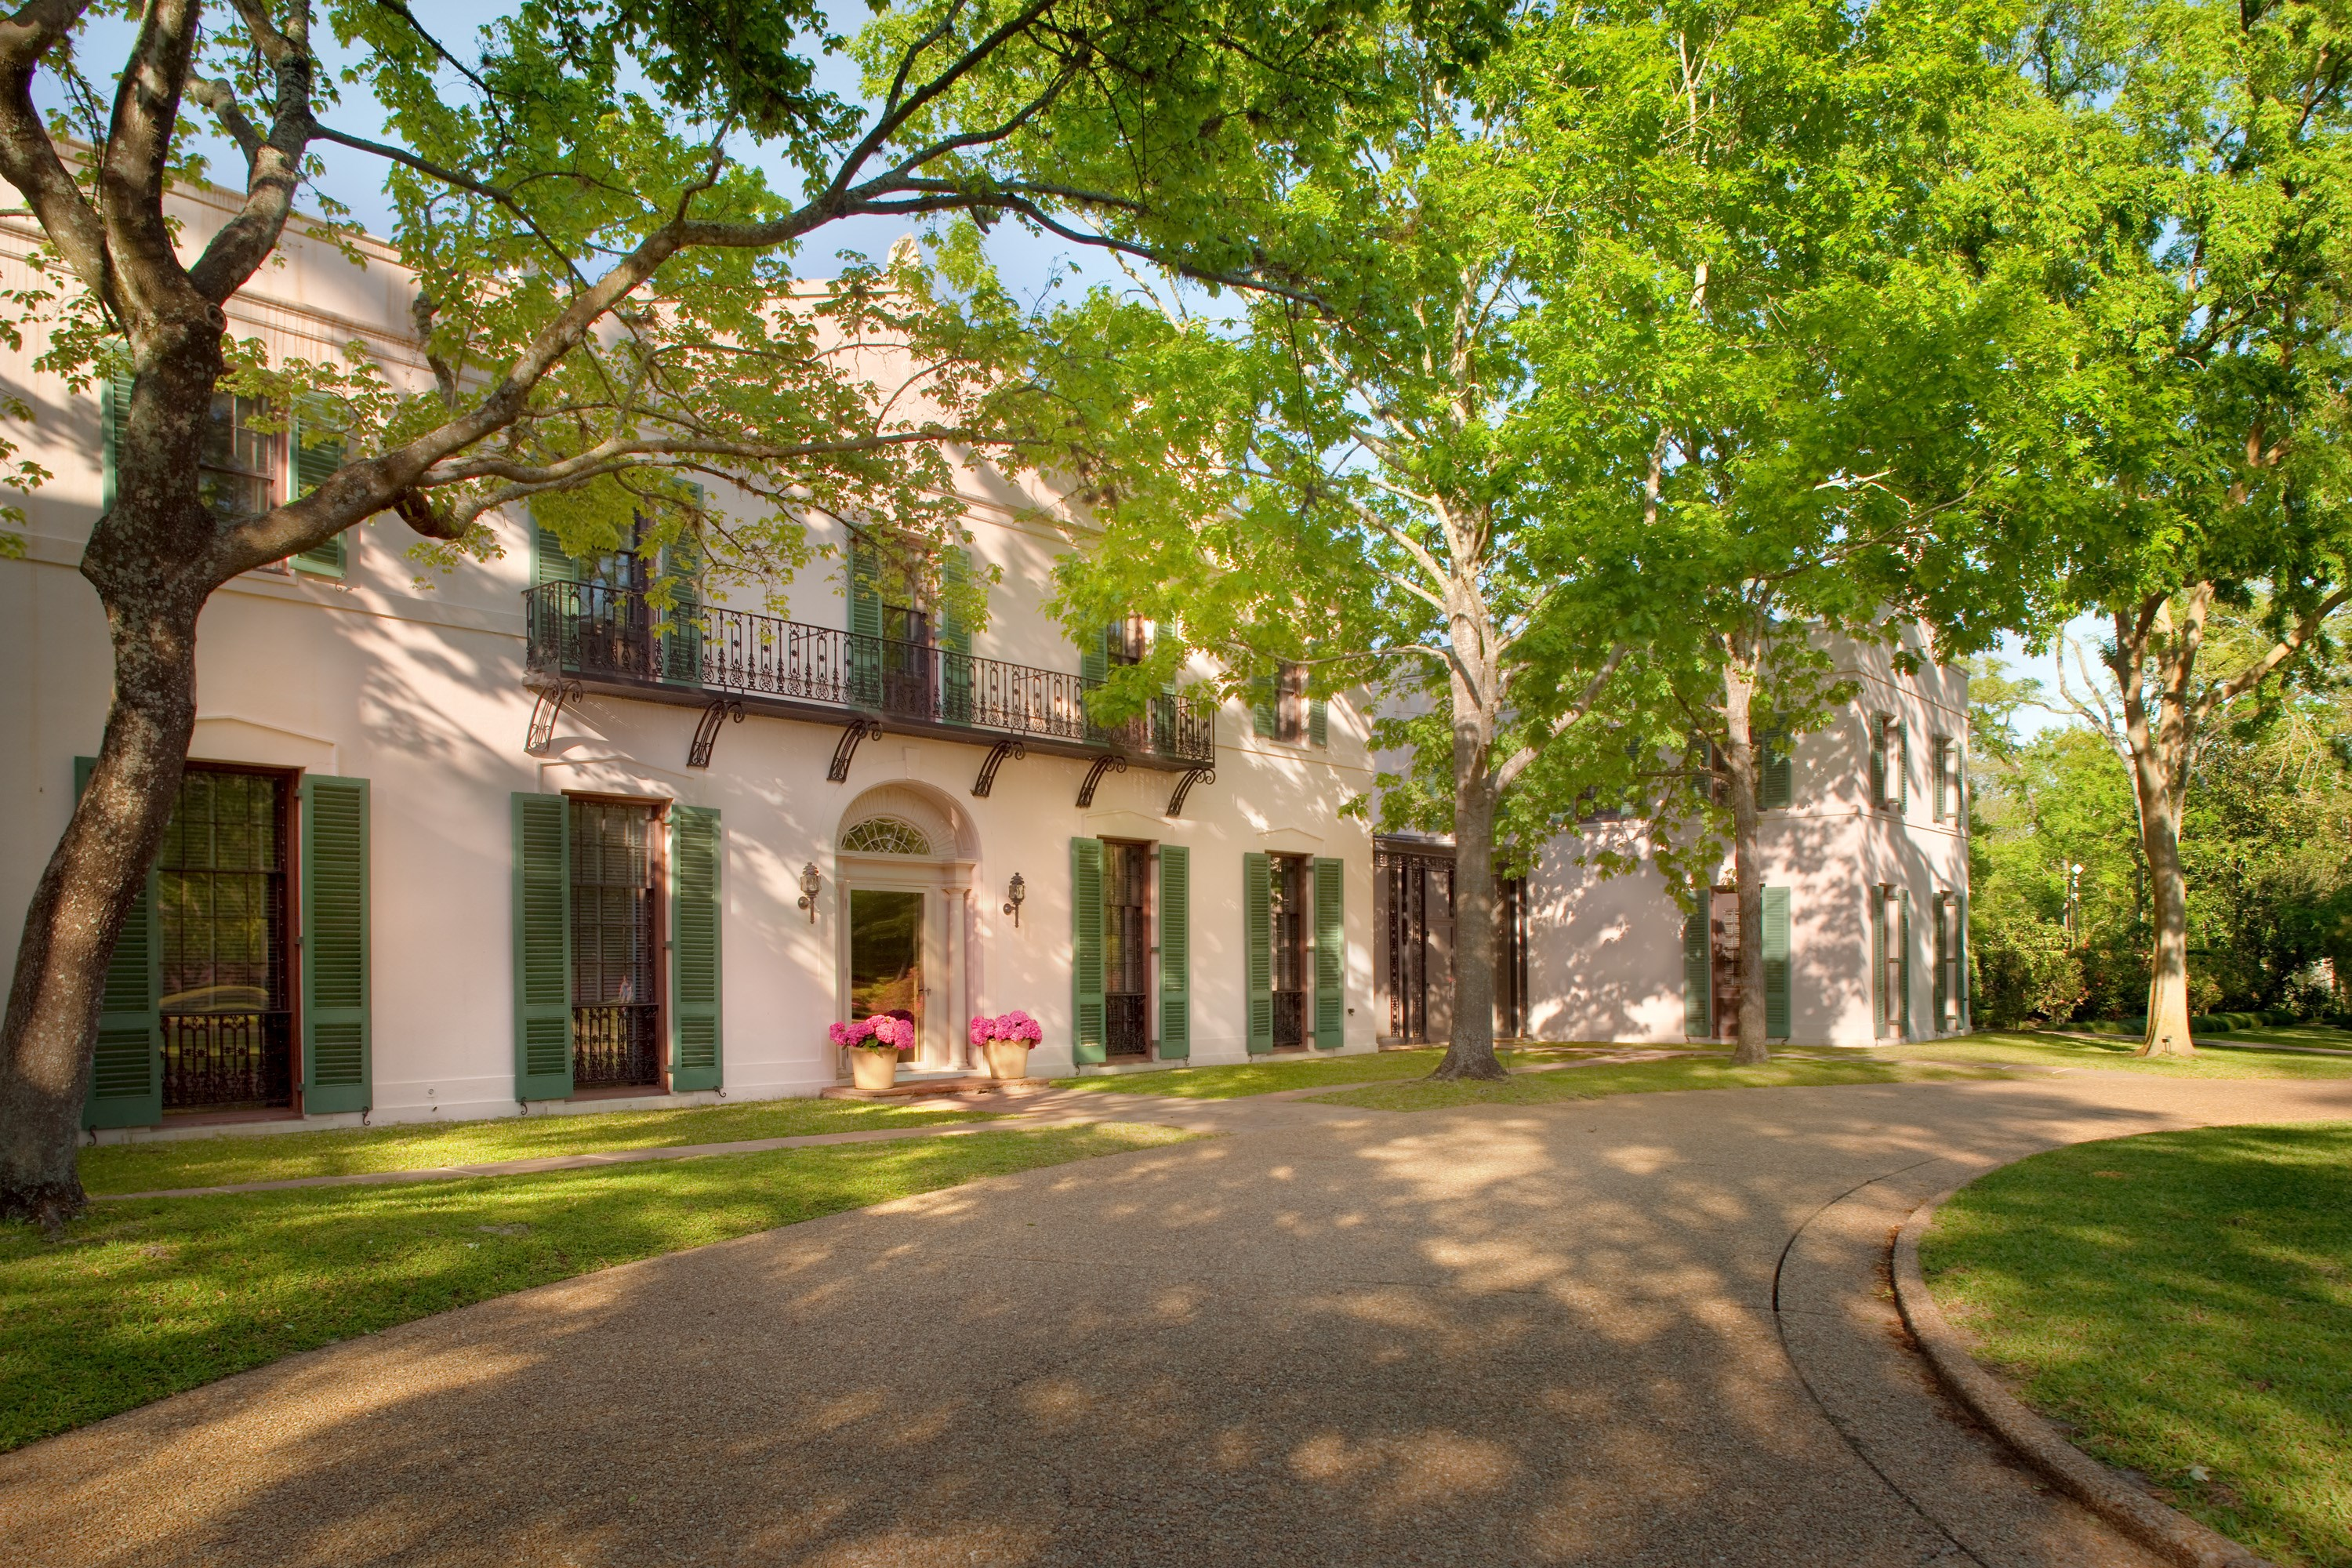 The MFAH: An Architectural History | The Museum of Fine Arts, Houston